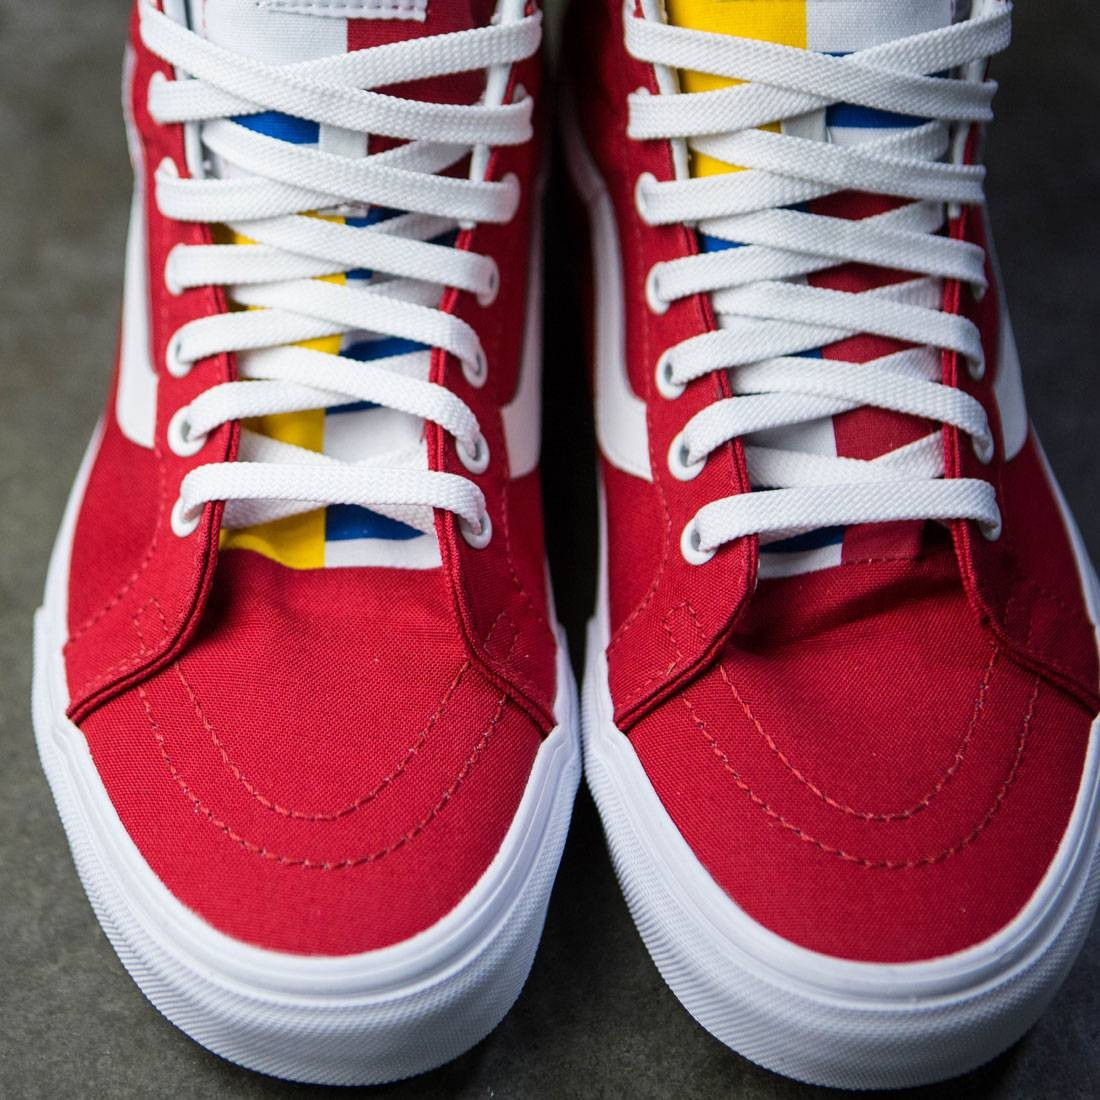 089688ec0c91 Vans Men SK8-Hi Reissue - 1966 (red   blue   white)